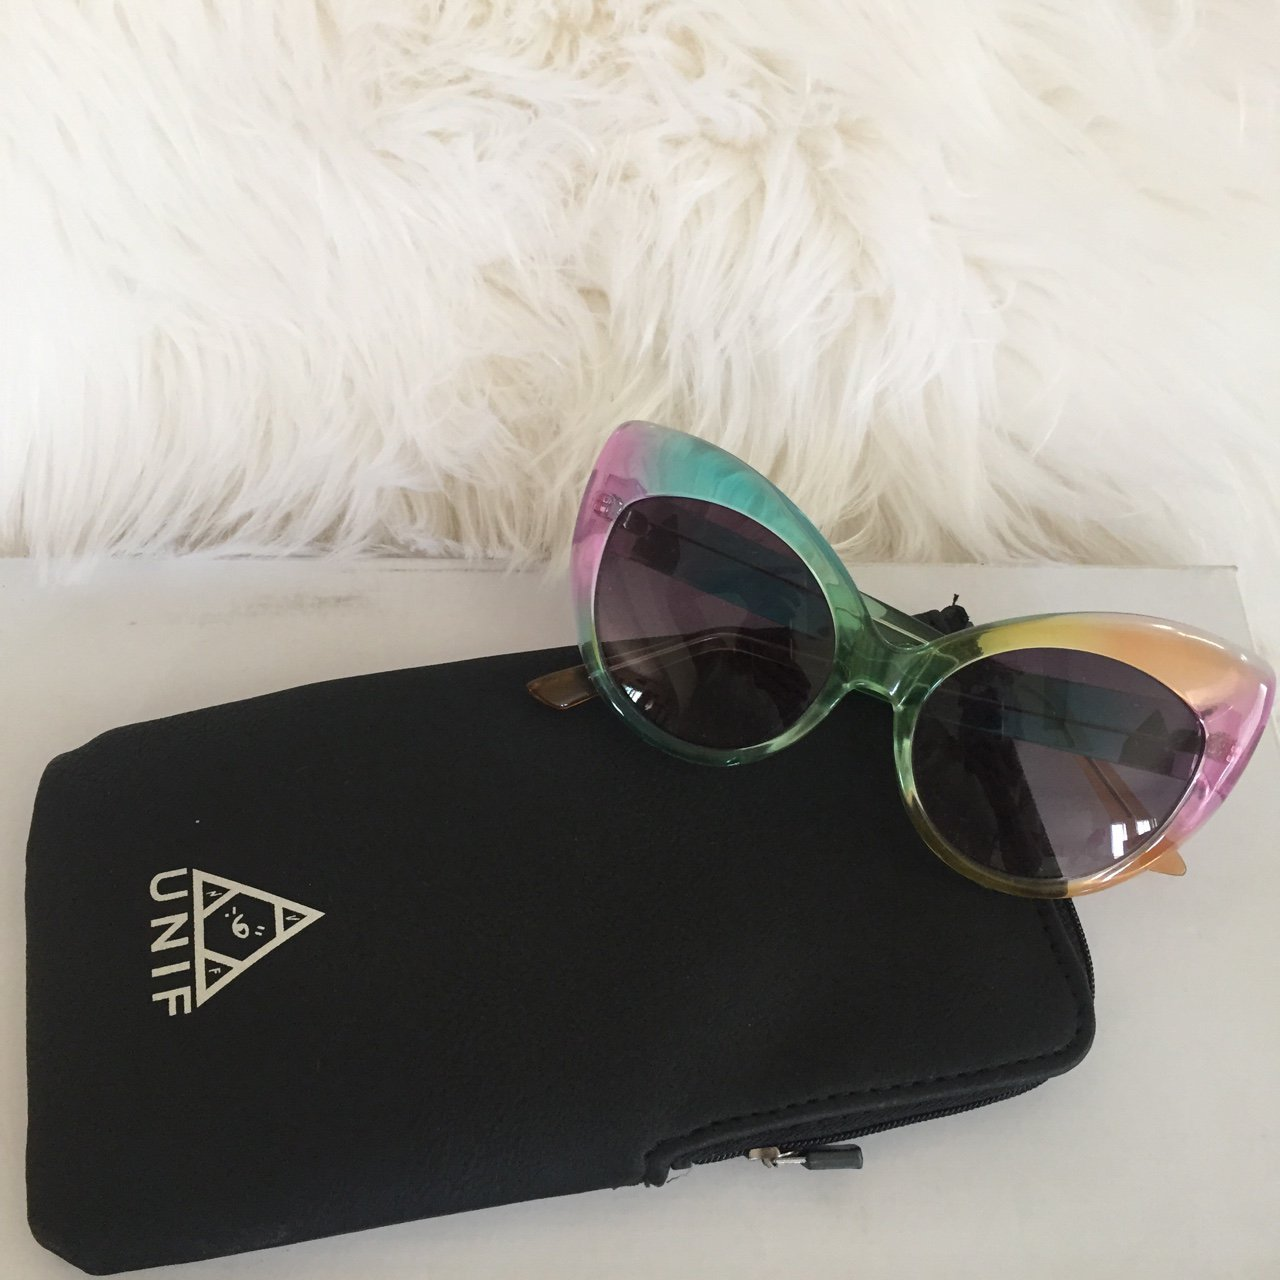 b47edf85c2d UNIF Rainbow The Moody s Cat Eye Sumglasses with case. been - Depop